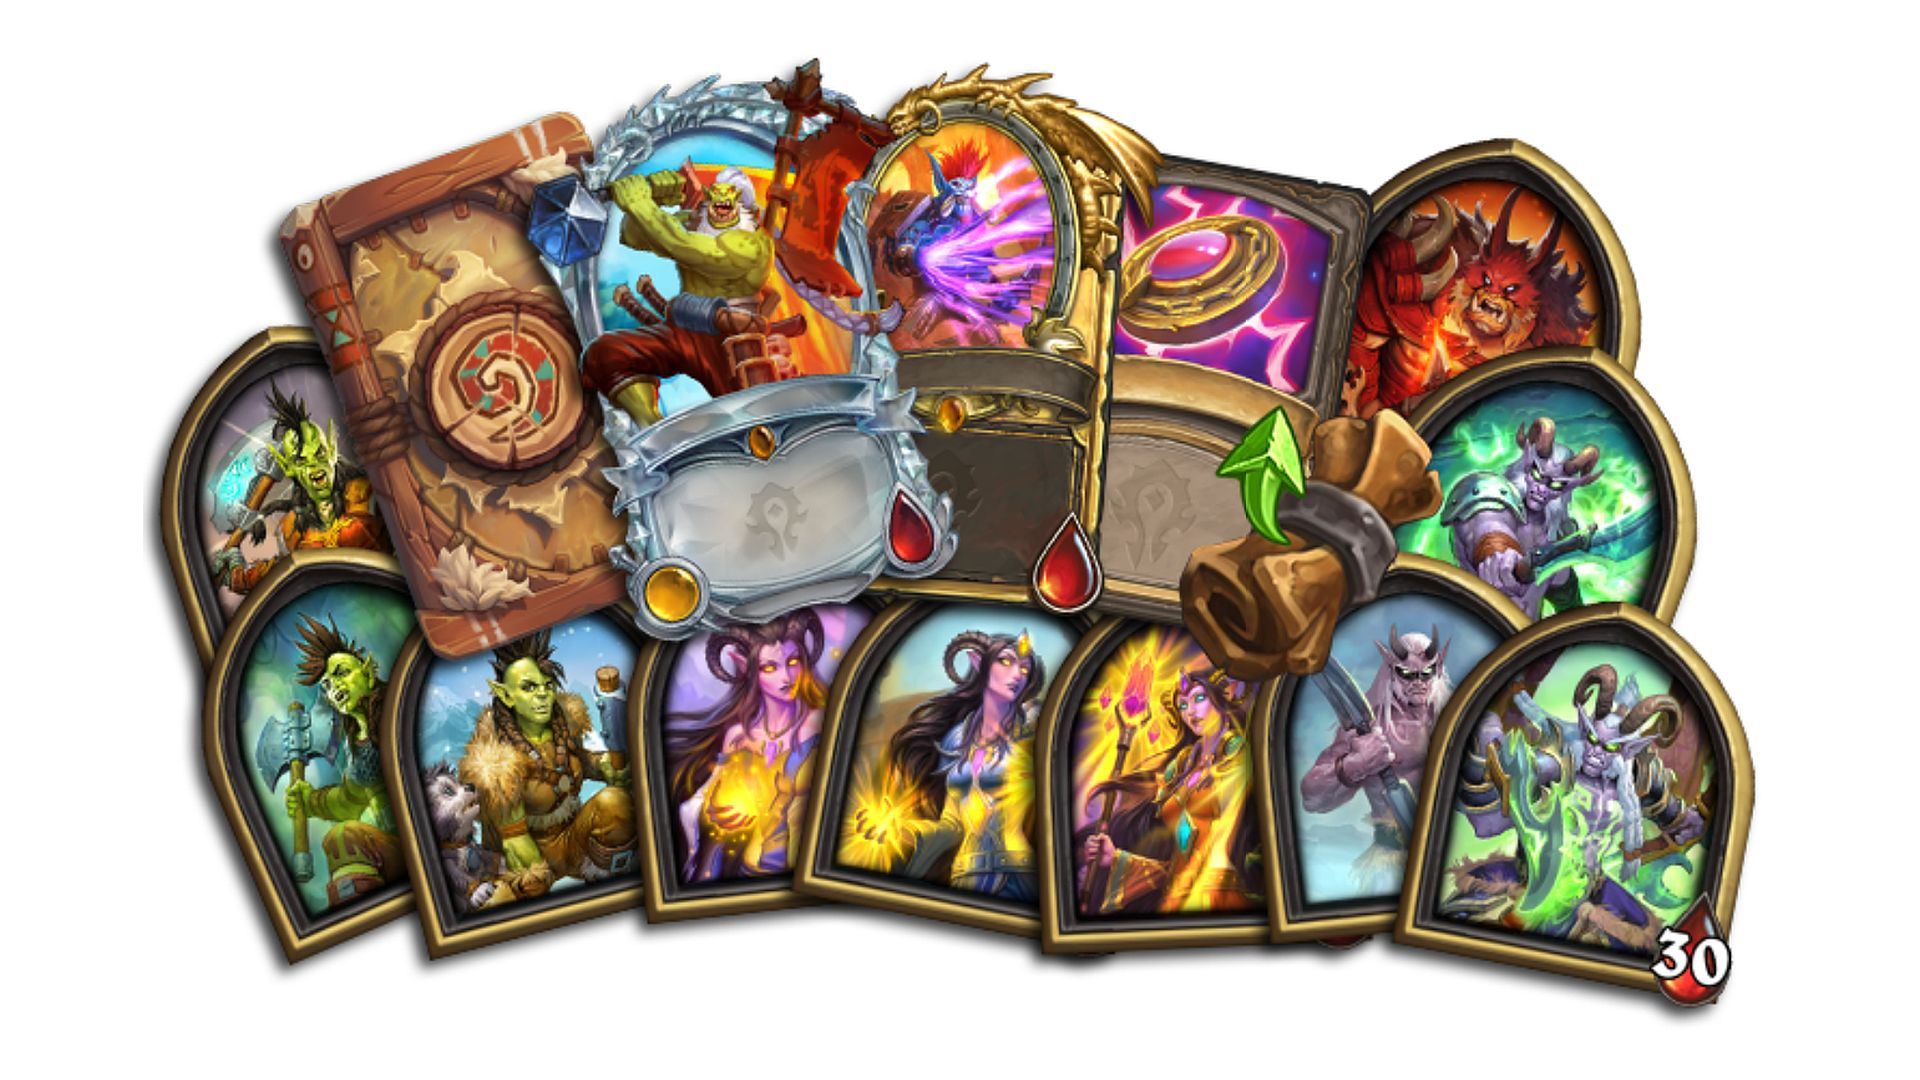 Hearthstone is getting Diamond cards with its new expansion